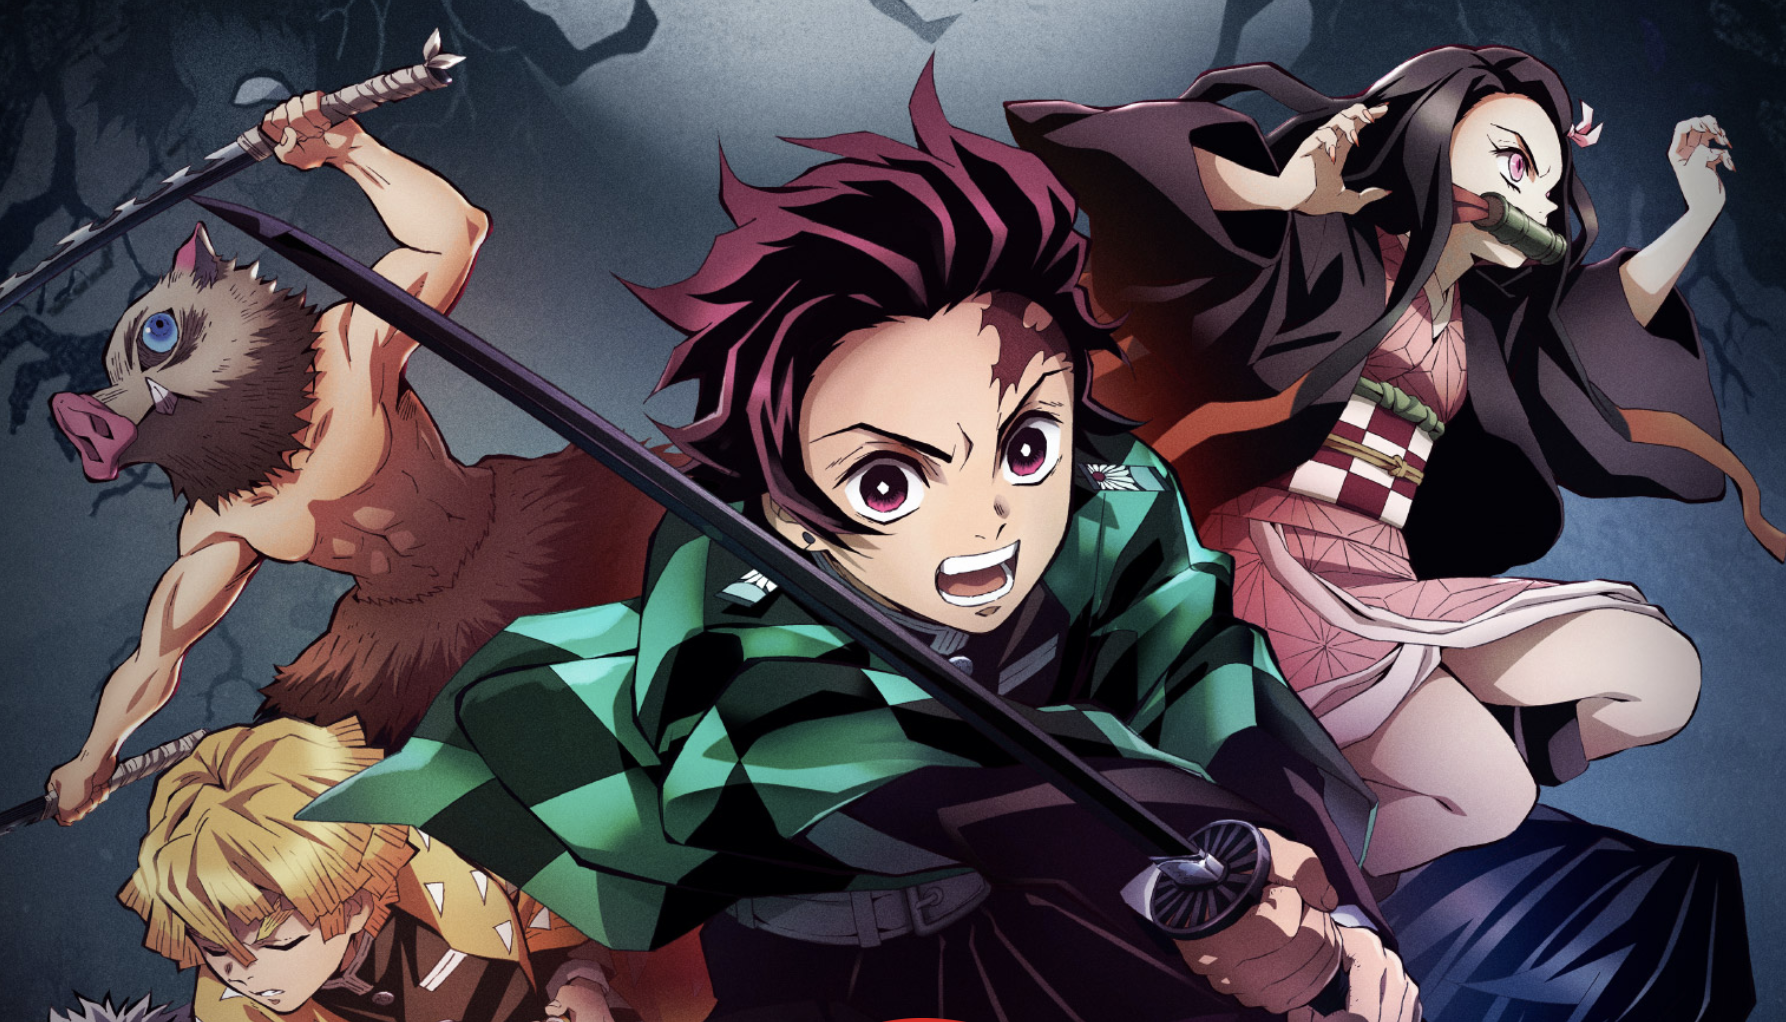 Anime Demon Slayer Kimetsu no Yaiba